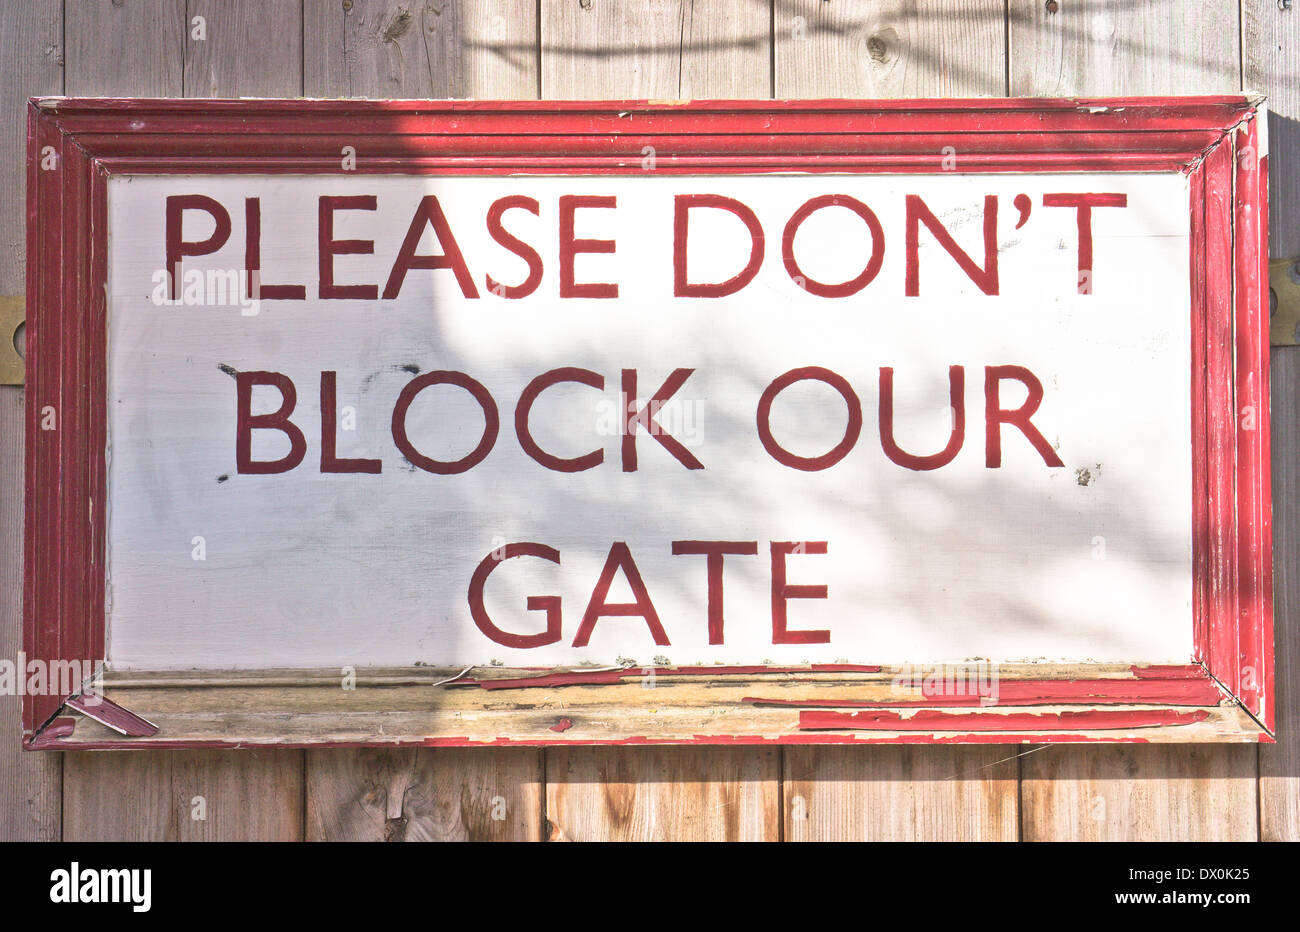 A sign on a home gate asking public not to block the gateway Stock Photo